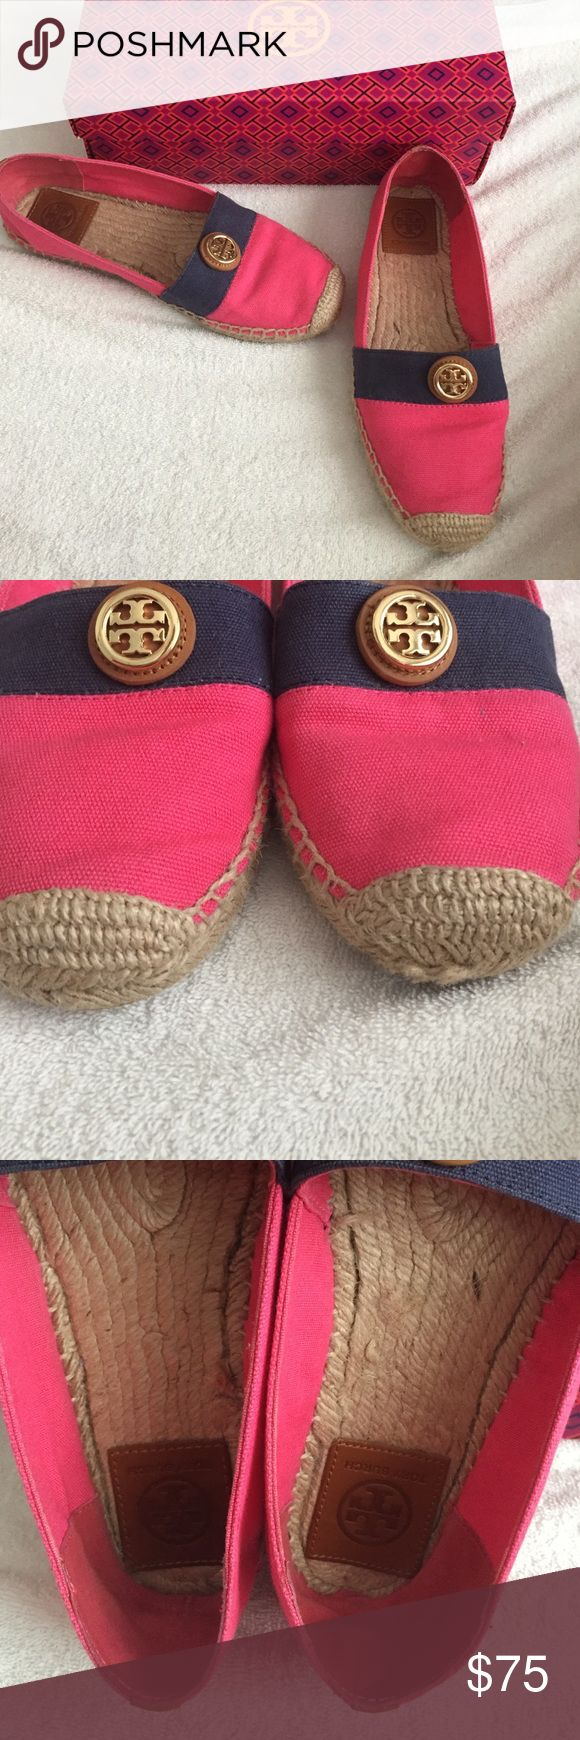 Tory Burch navy and pink espadrilles size 8.5 They show some minor wear from wearing them a few times, but overall are in great condition! Tory Burch Shoes Espadrilles